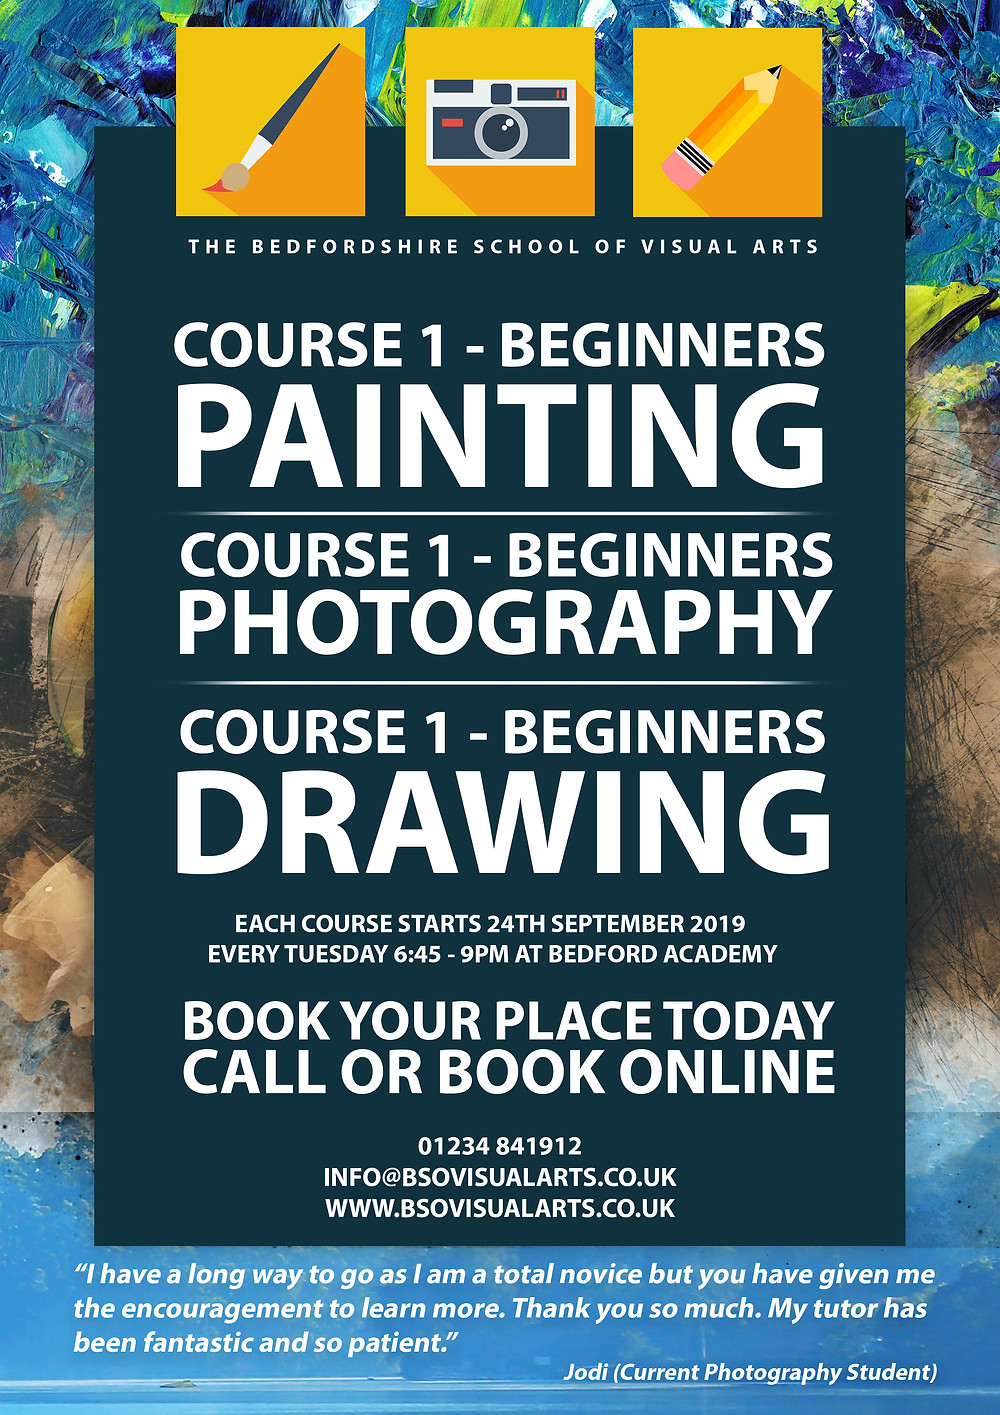 Bedfordshire School of Visual Arts Courses